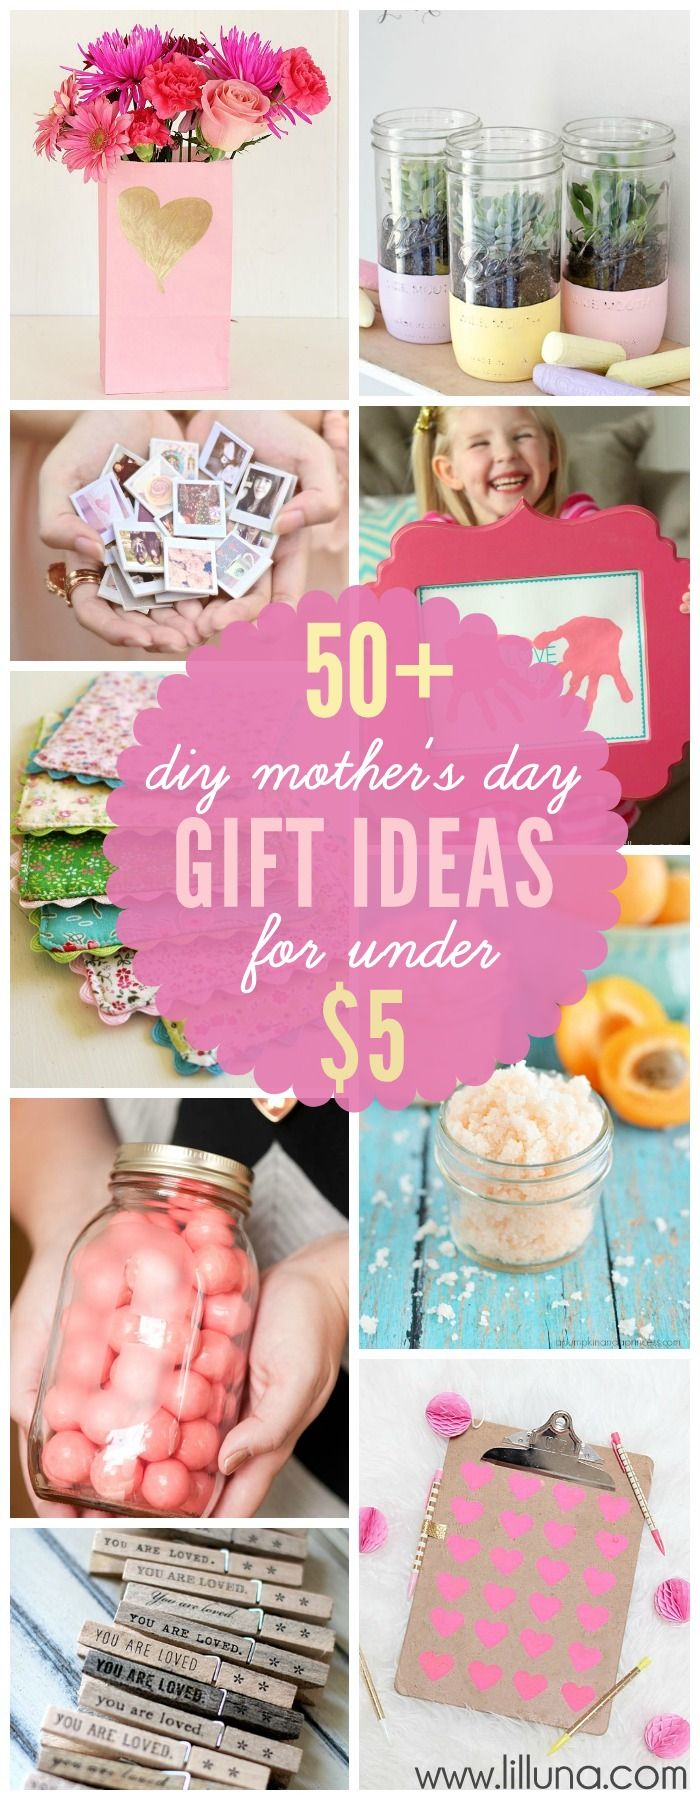 50+ DIY Mother's Day Gift Ideas